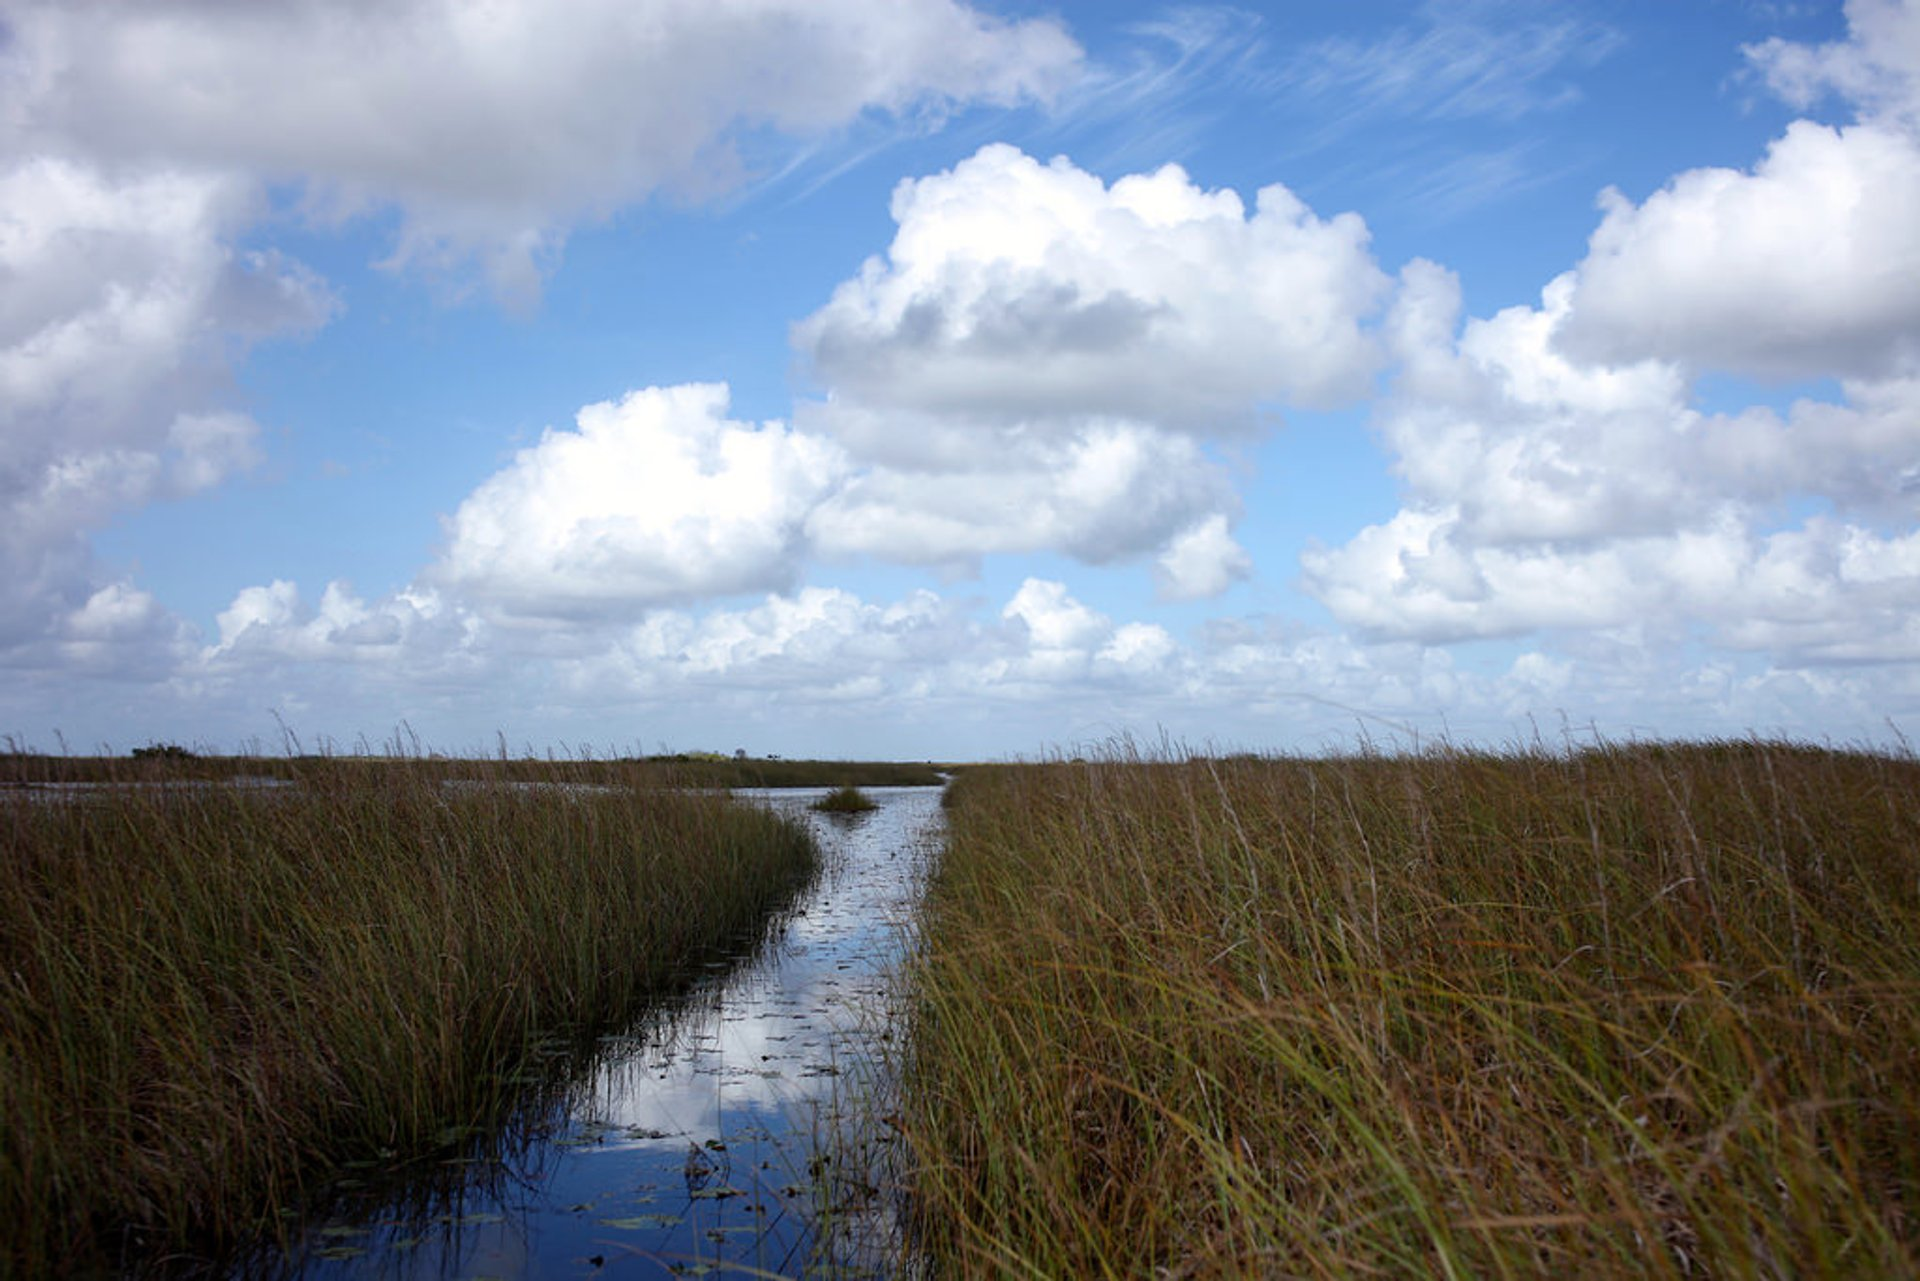 Everglades Boating Adventure in Miami - Best Season 2019